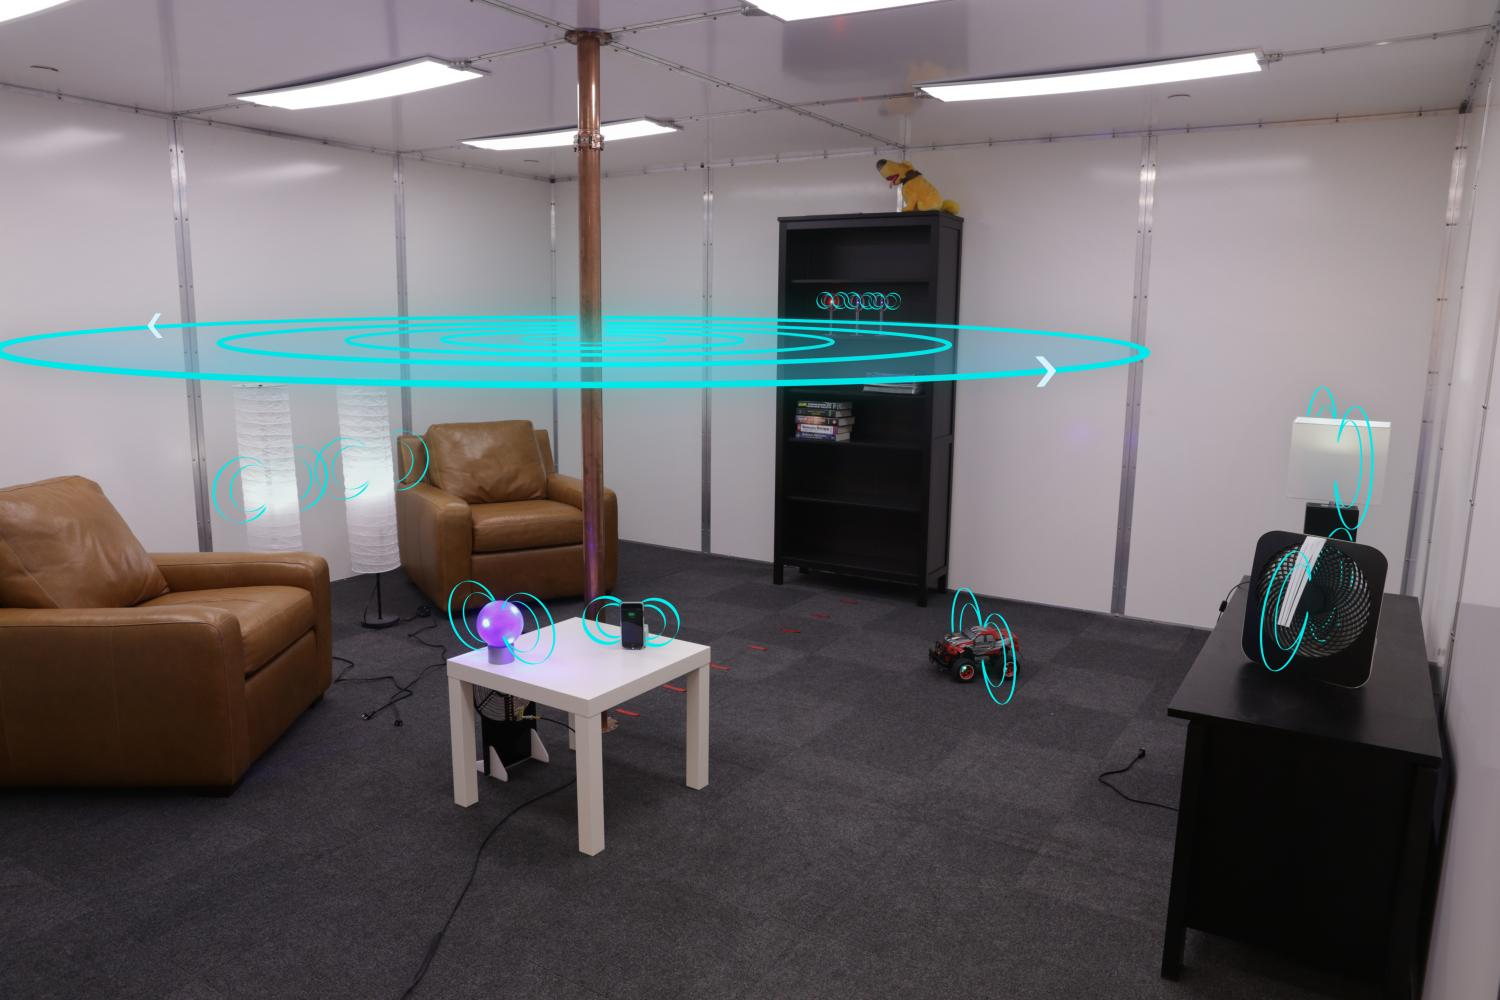 Wireless power transmission safely charges devices anywhere within a